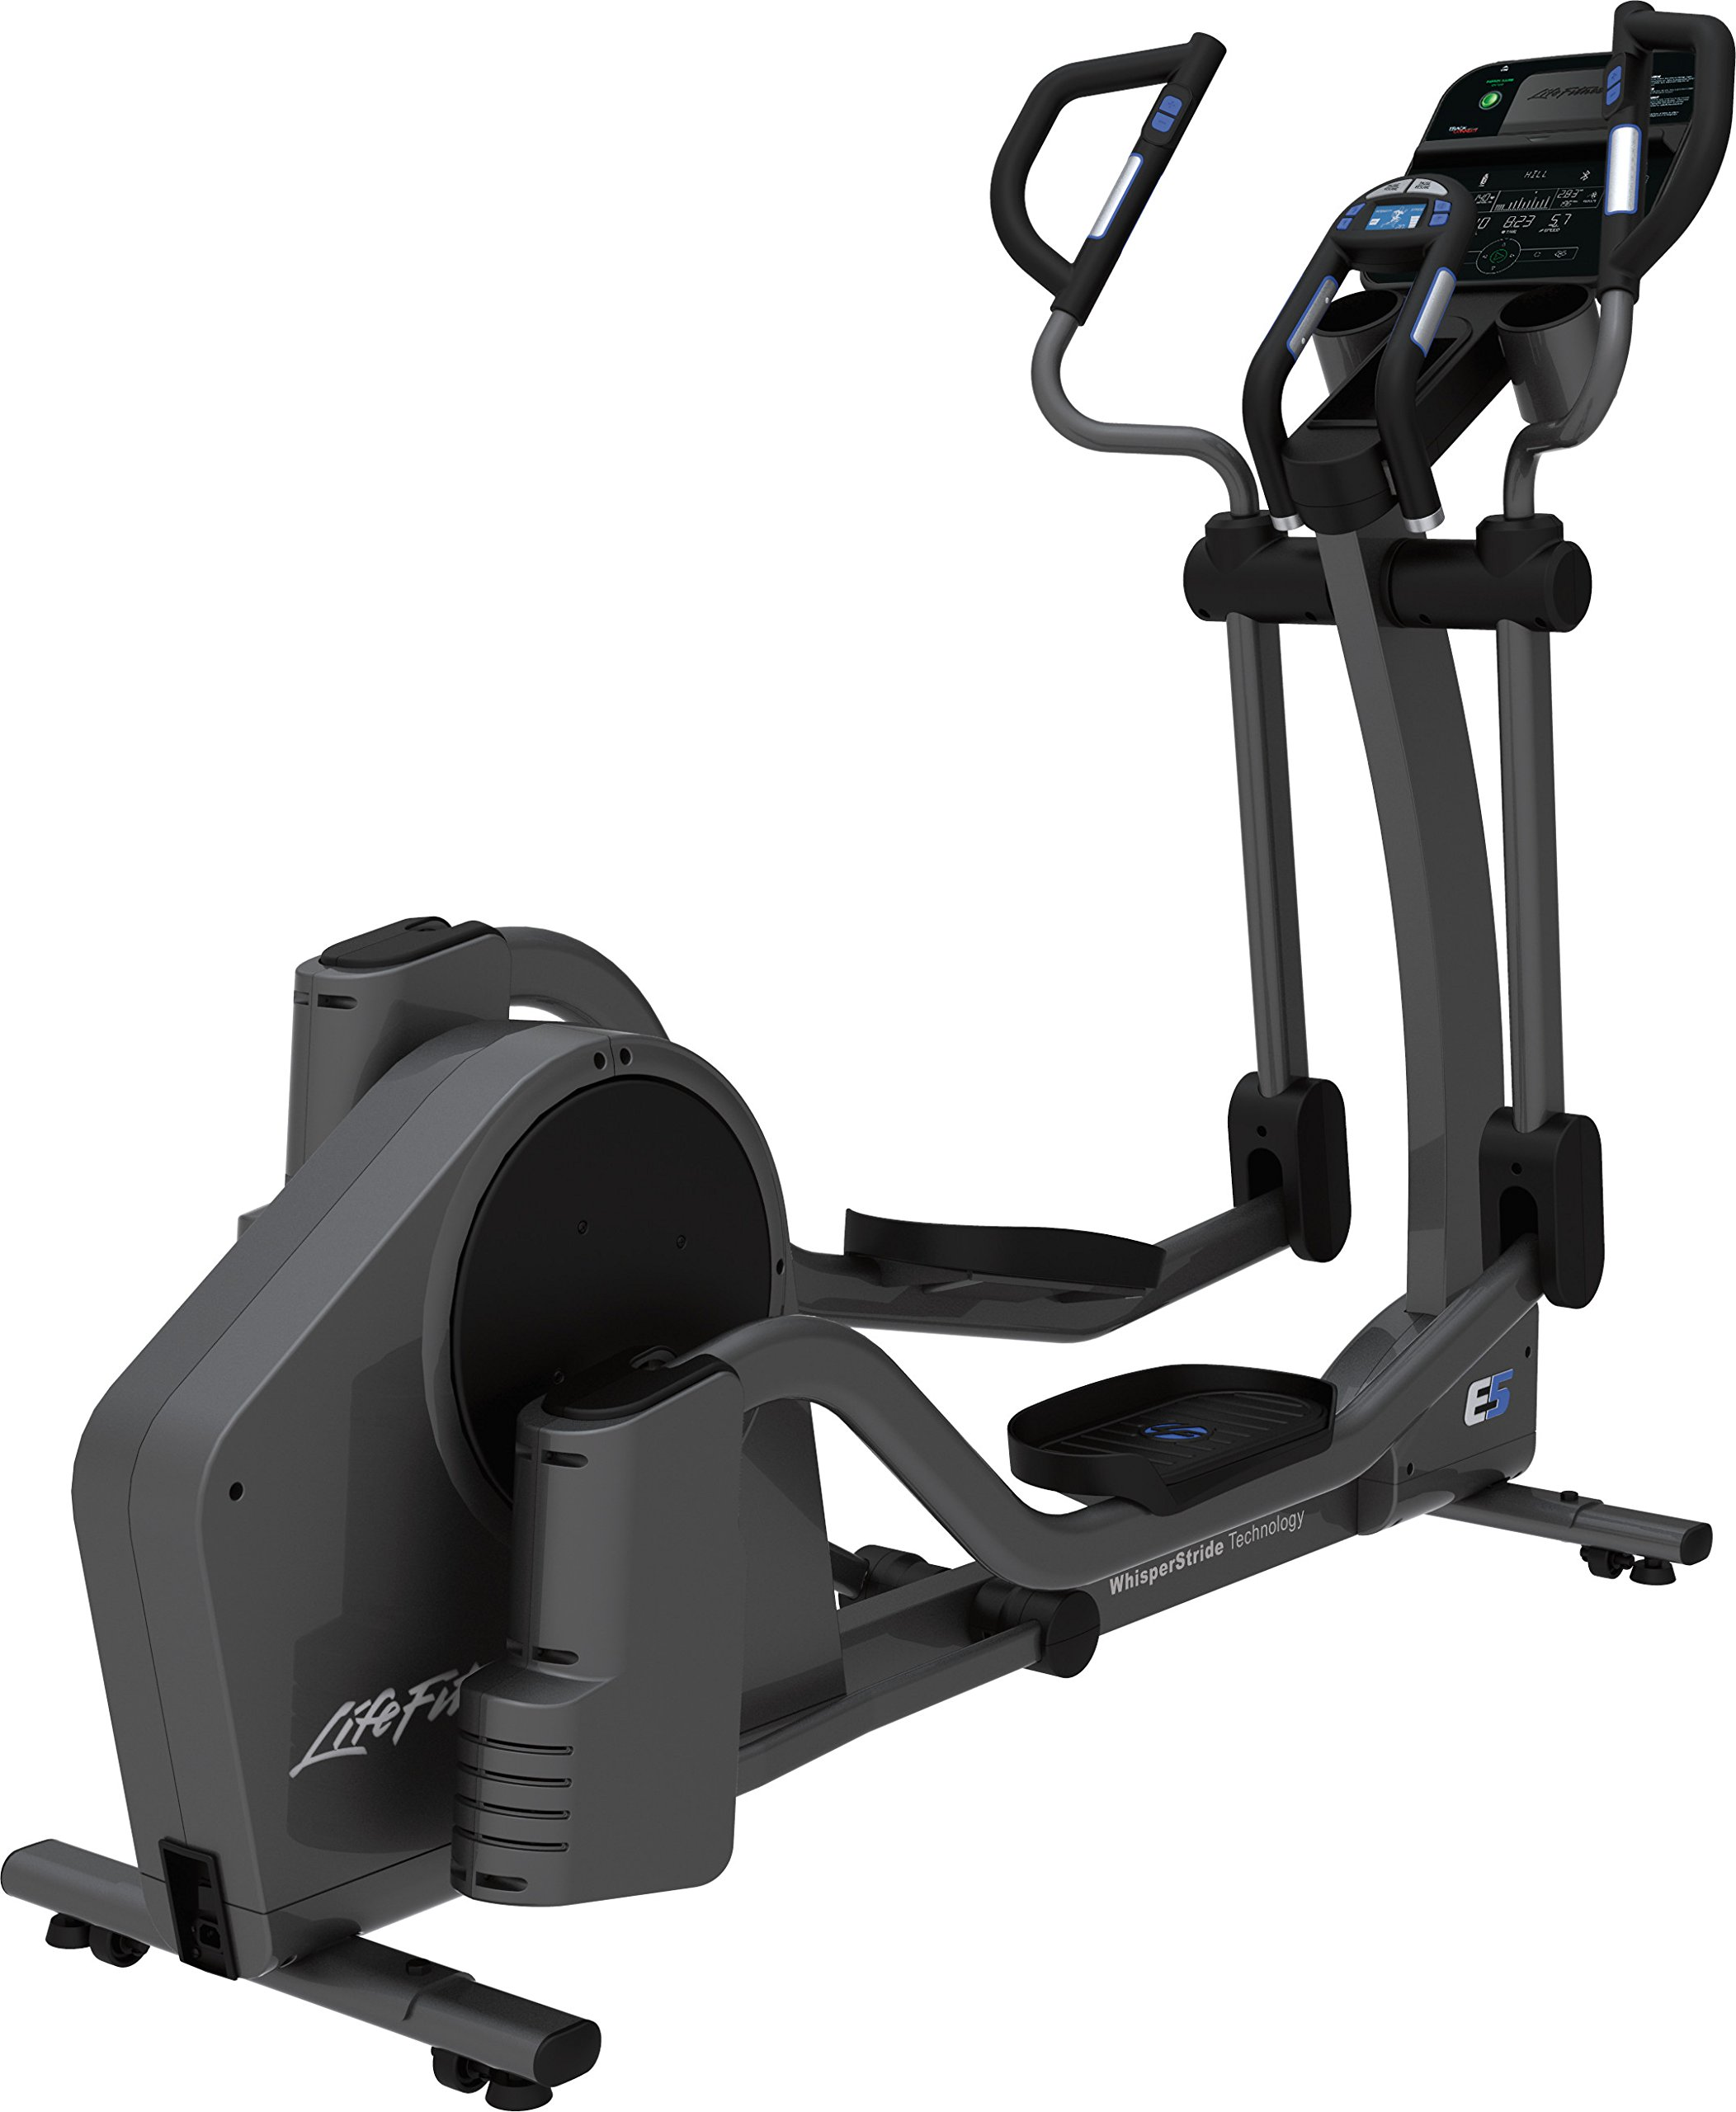 Life Fitness E5TC-XX00-0106 E5 Cross-trainer with Track Connect Console by Life Fitness